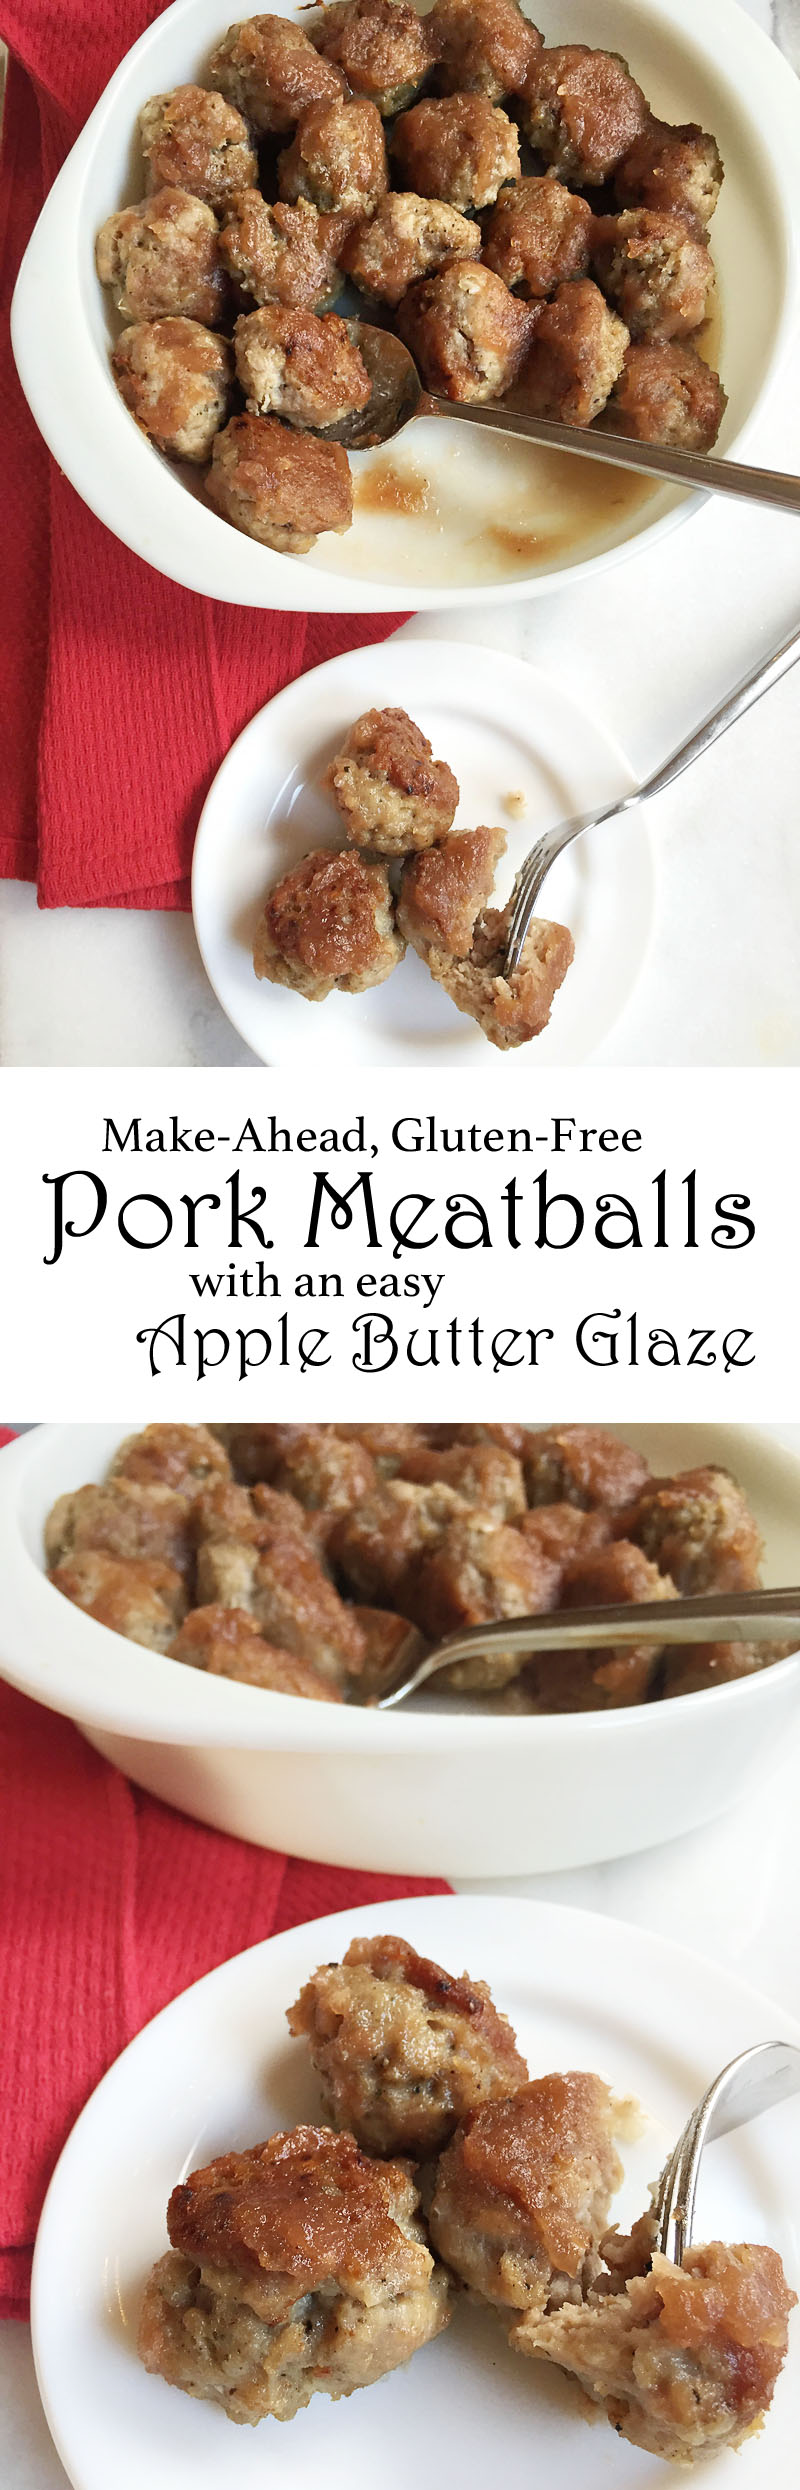 Make-Ahead Gluten-Free Pork Meatballs with an Easy Apple Butter Glaze | Sweet Anna's